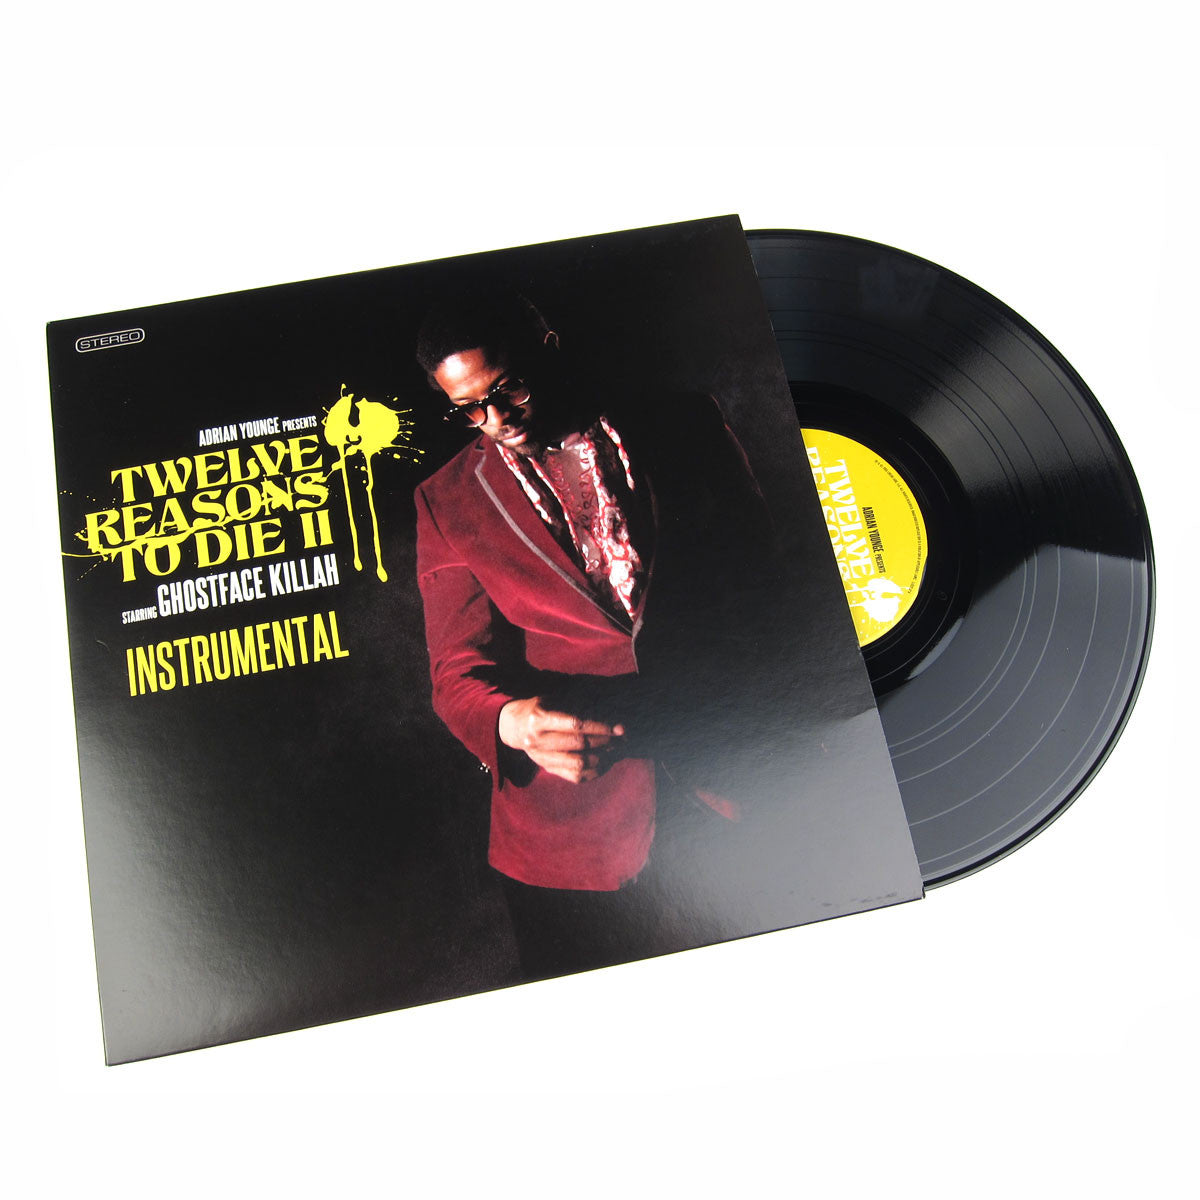 Ghostface Killah & Adrian Younge: Twelve Reasons To Die II Instrumentals Vinyl LP